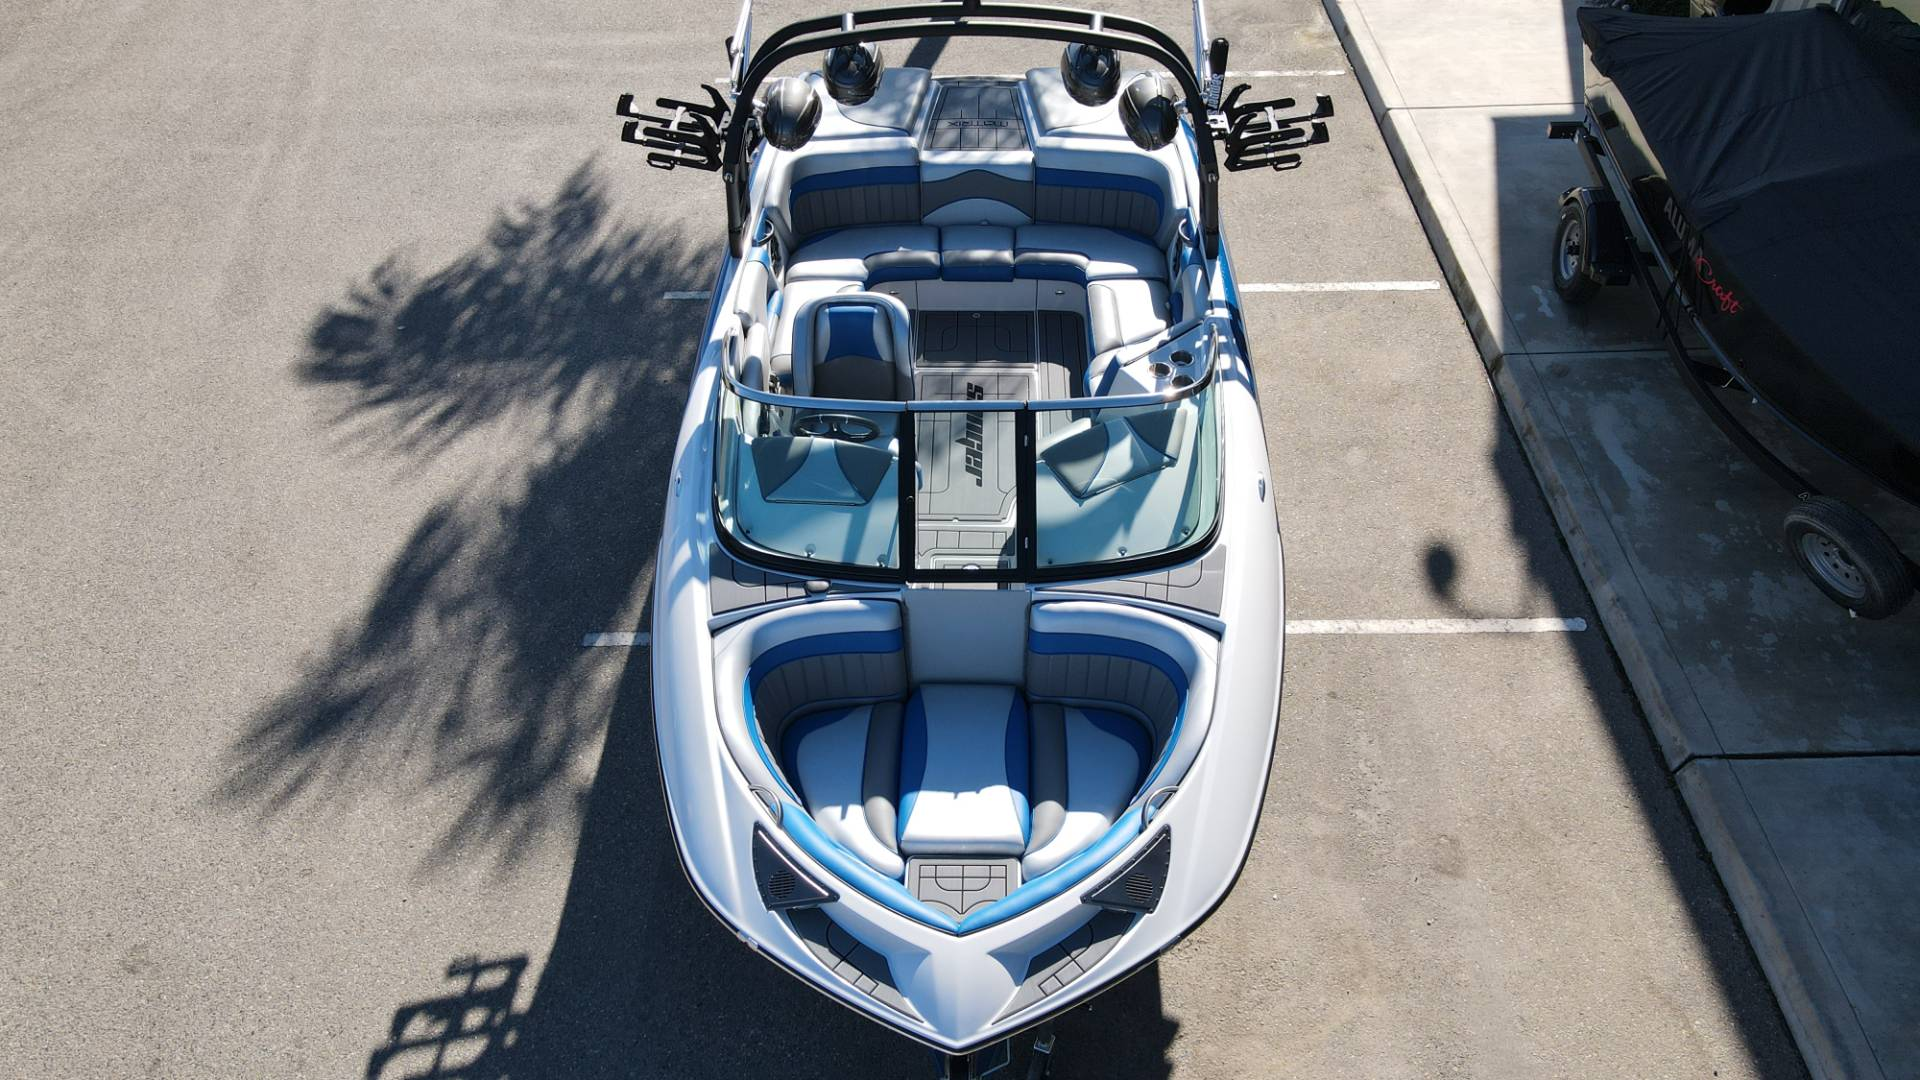 2021 Sanger Boats 212 SL in Madera, California - Photo 26